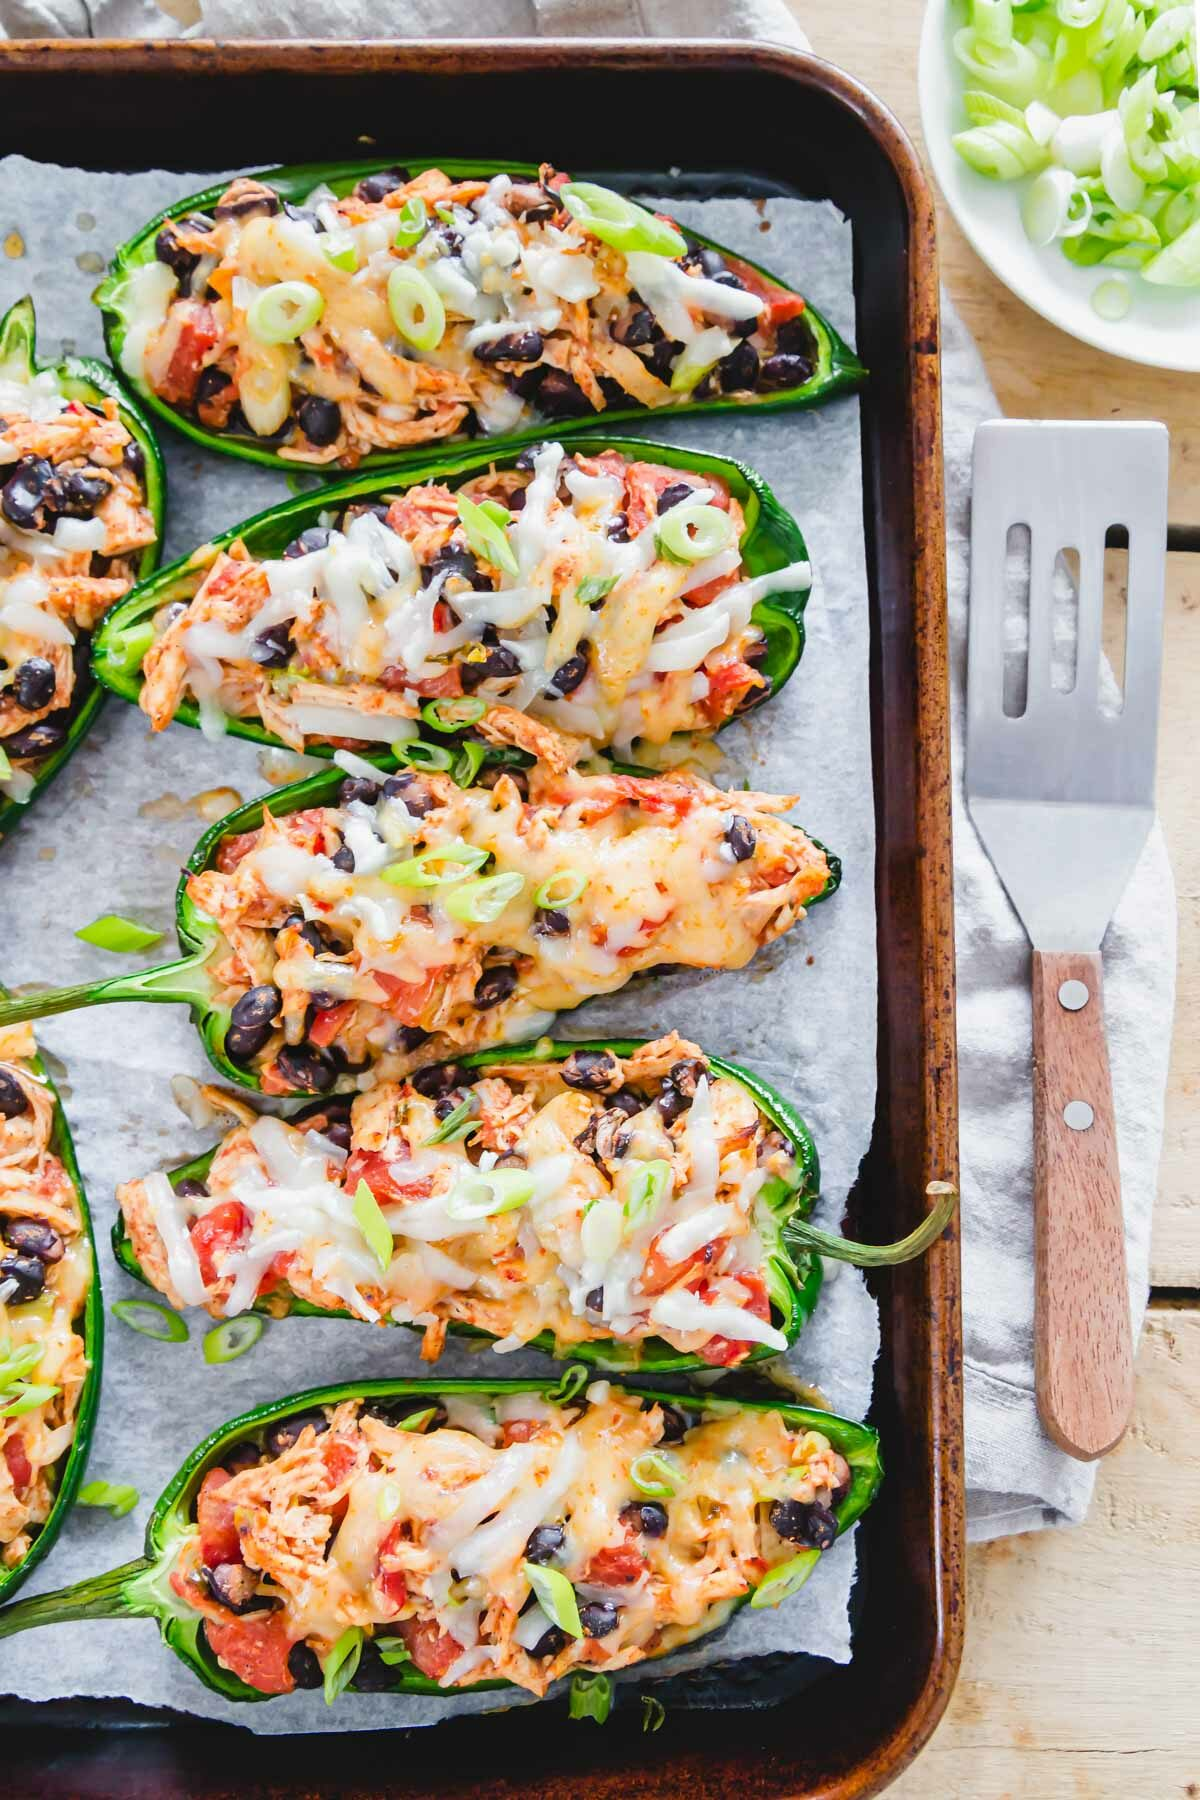 Spicy stuffed Mexican poblano peppers with chicken, black beans, tomatoes and lots of melted cheese are an easy weeknight meal everyone will love!